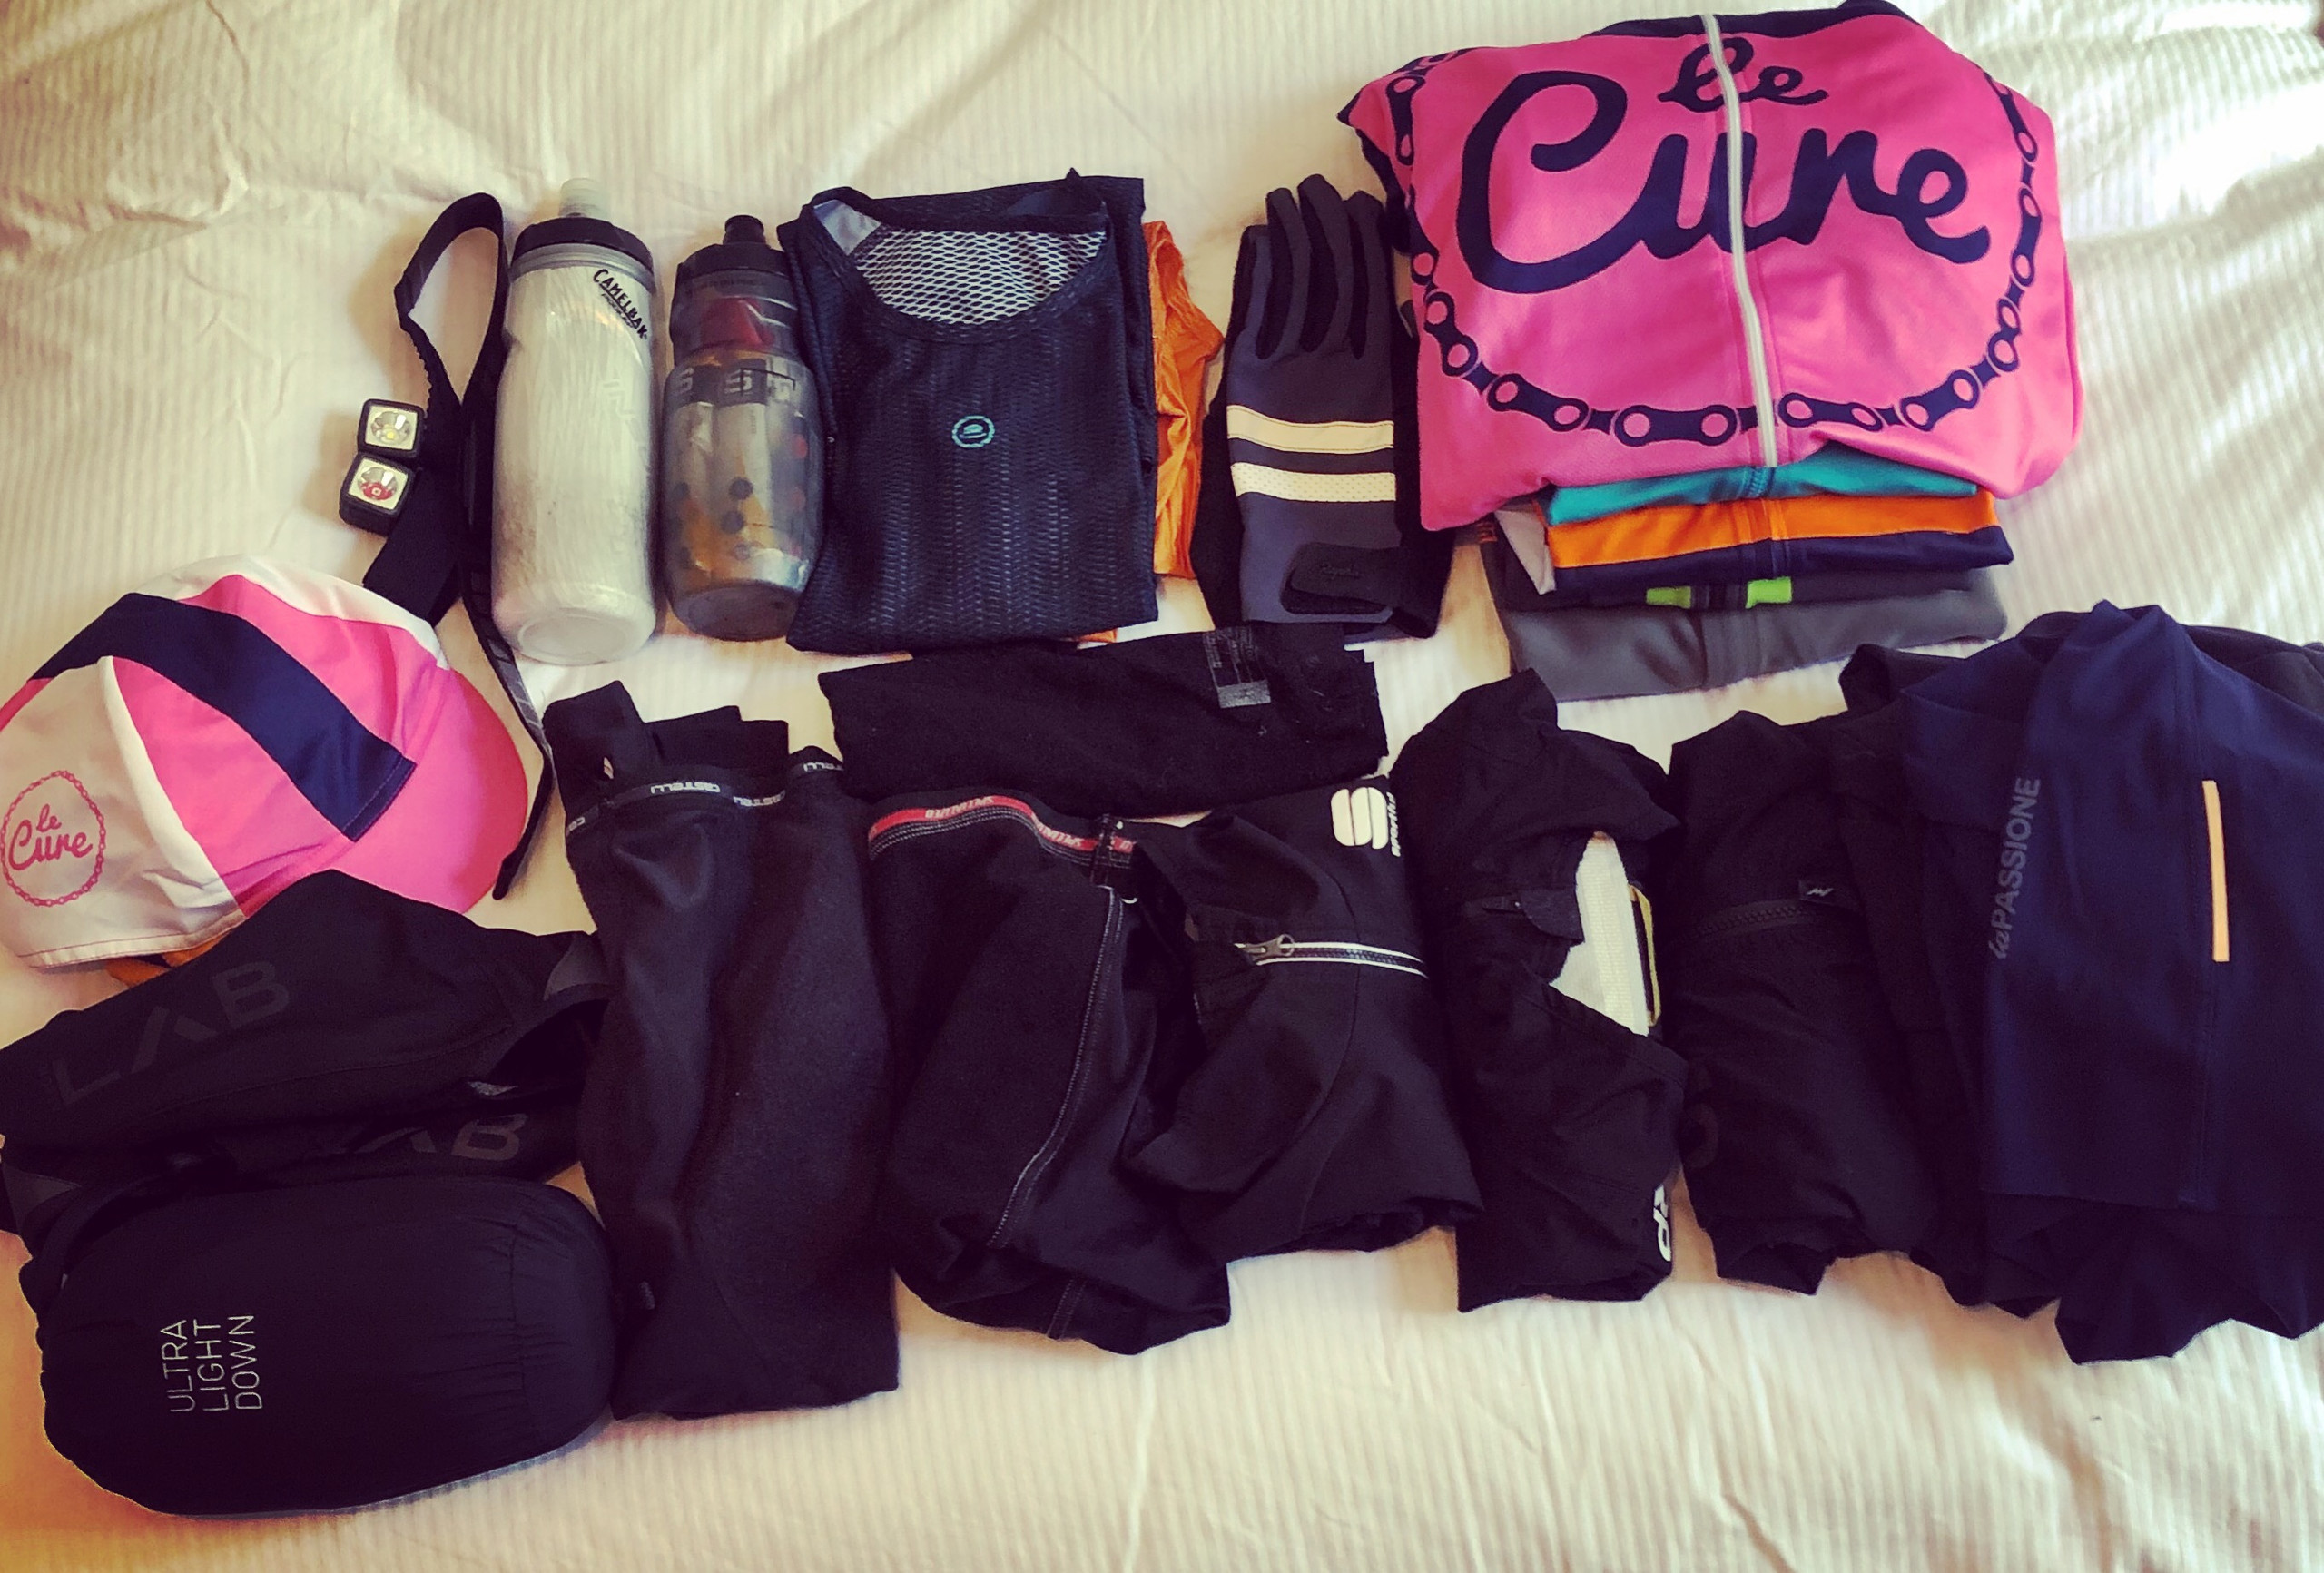 cycling kit laid out across bed